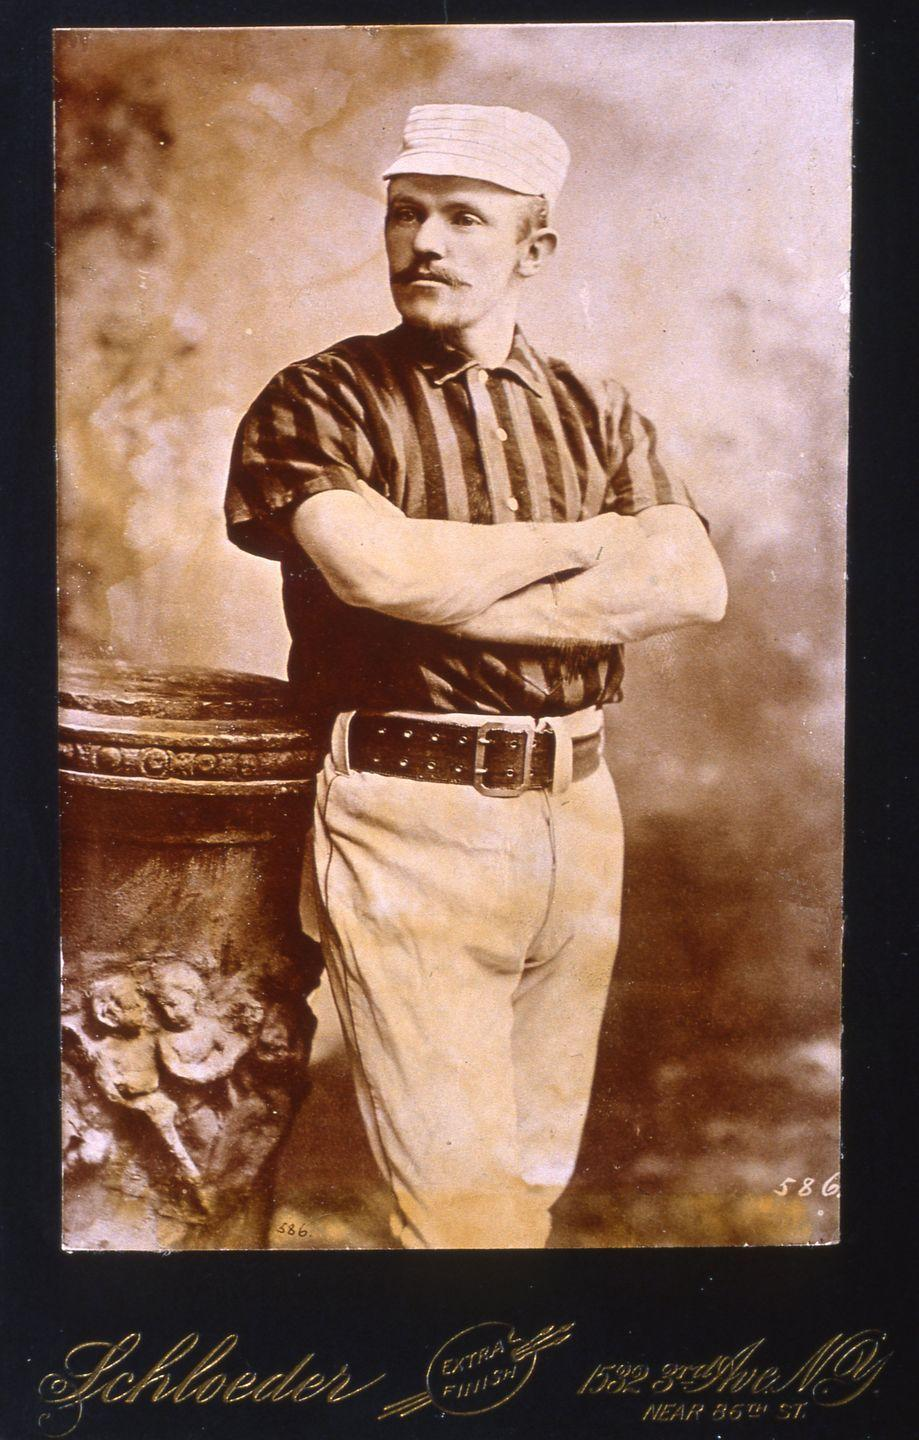 """<p><strong>October 25, 1889</strong>: Giants shortstop John Ward becomes the original Mr. October with his heroics in Game 6 of the 1889 World Series between the New York Giants and Brooklyn Bridegrooms. With two outs in the bottom of the ninth inning, nobody on base, and a full count on Ward, the Giants are about to fall behind 4 to 2 in the series. But Ward singles to right off Adonis Terry, steals second on Terry's first pitch to Roger Connor, and then third on the next pitch. After scoring the tying run, Ward wins the game in the eleventh with a walk-off single. """"Ward singlehandedly snatches victory from the jaws of defeat,"""" says Thorn, """"and I don't think there had ever been anything like it before.""""<br> </p>"""